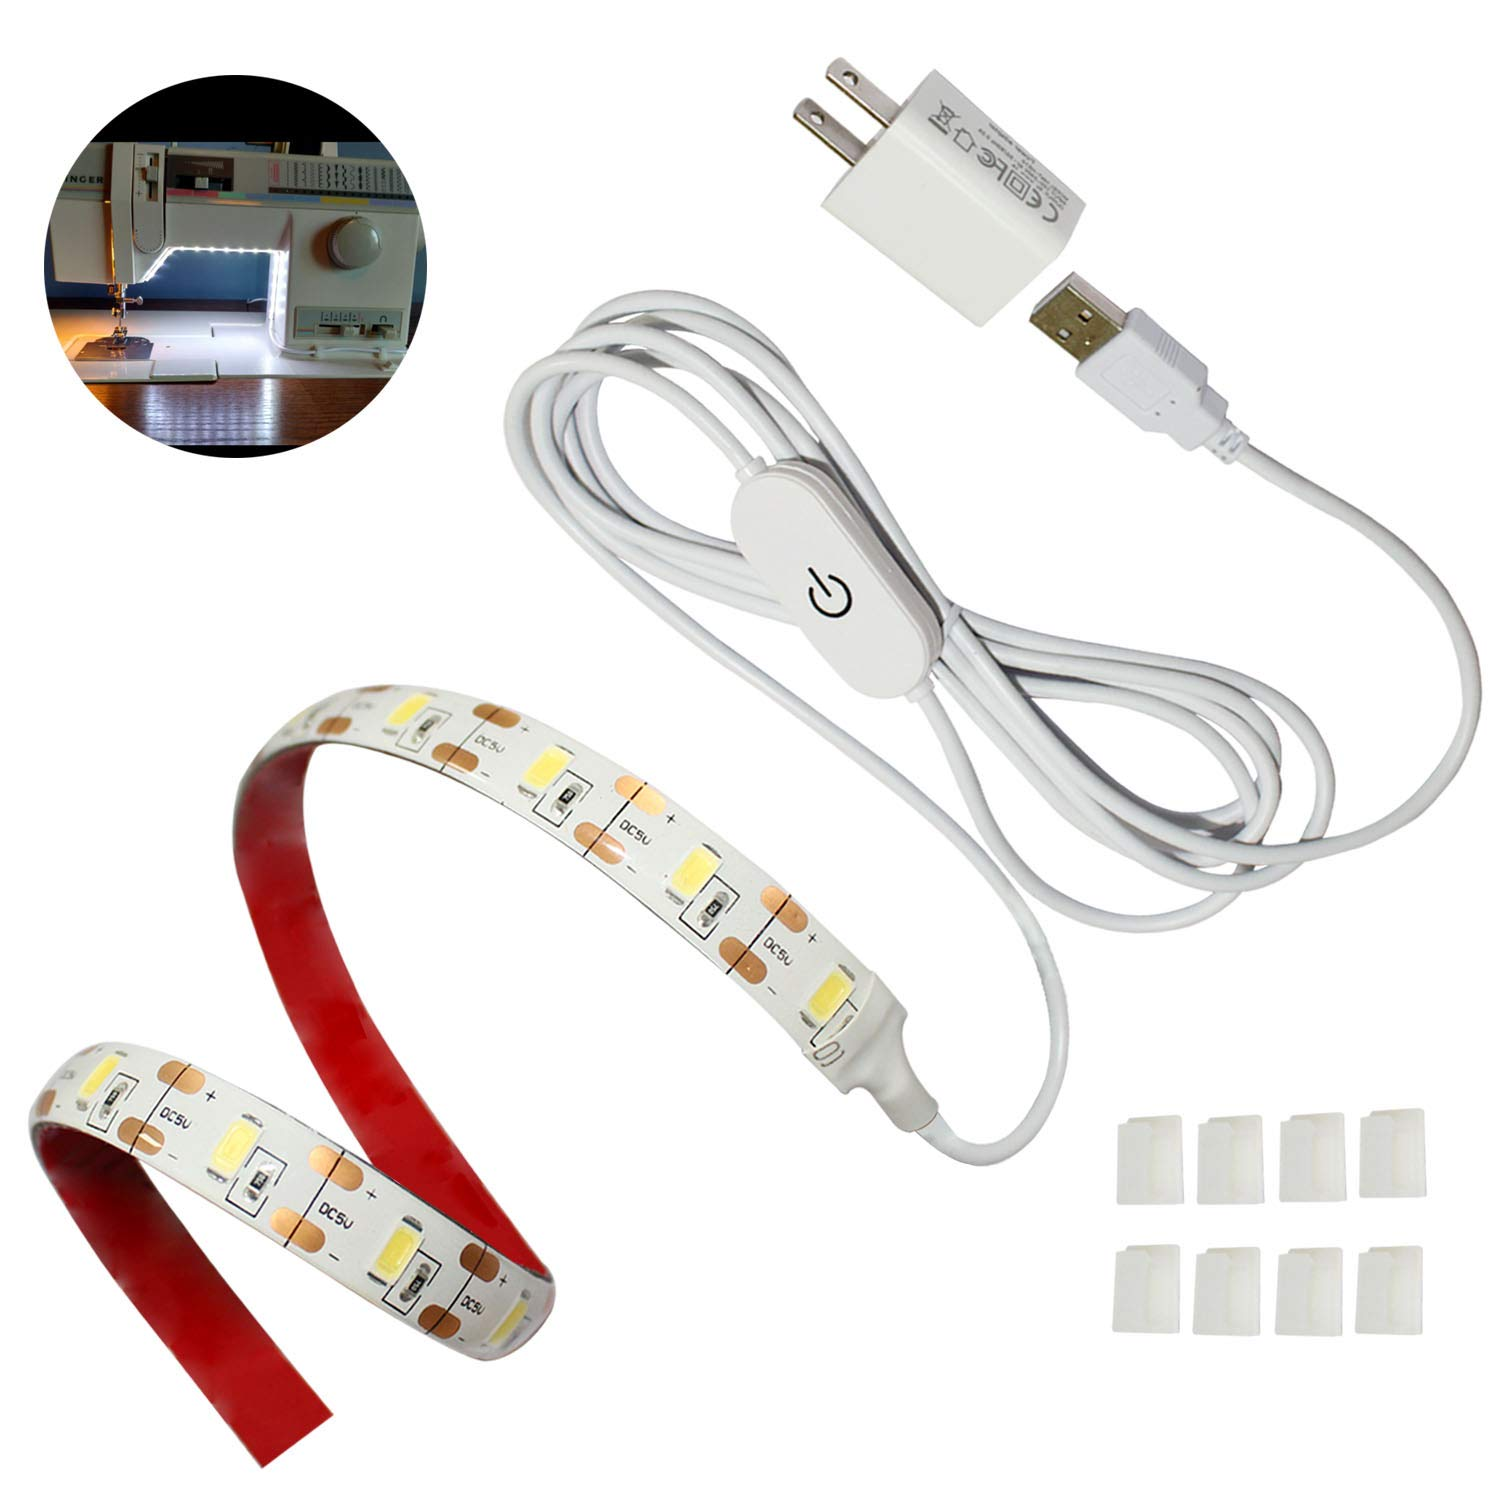 Suitable for All Sewing Machines Sewing Machine LED Light 6.6 ft with Touch Dimmer and USB Power Cord 8 Adhesive Clips 6500K Sewing Light Strip